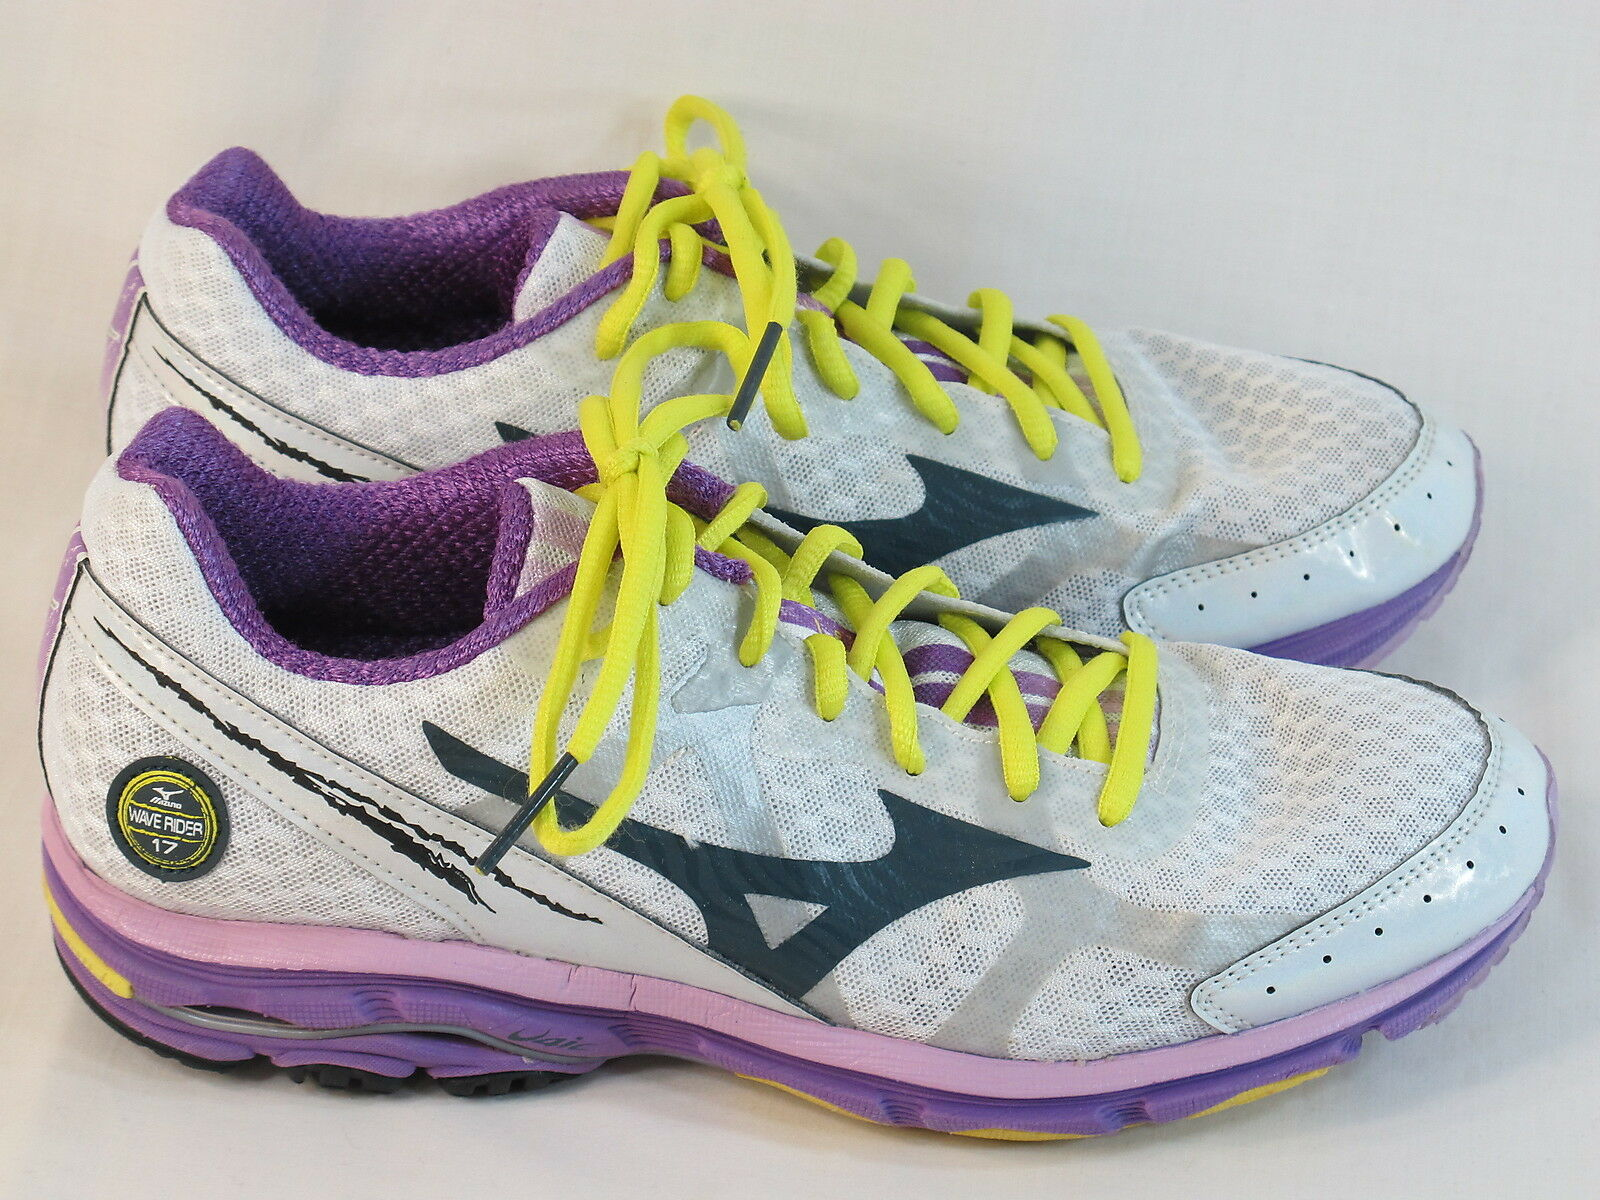 Mizuno Wave Rider 17 Running shoes Women's Size 9 US Excellent Plus Condition